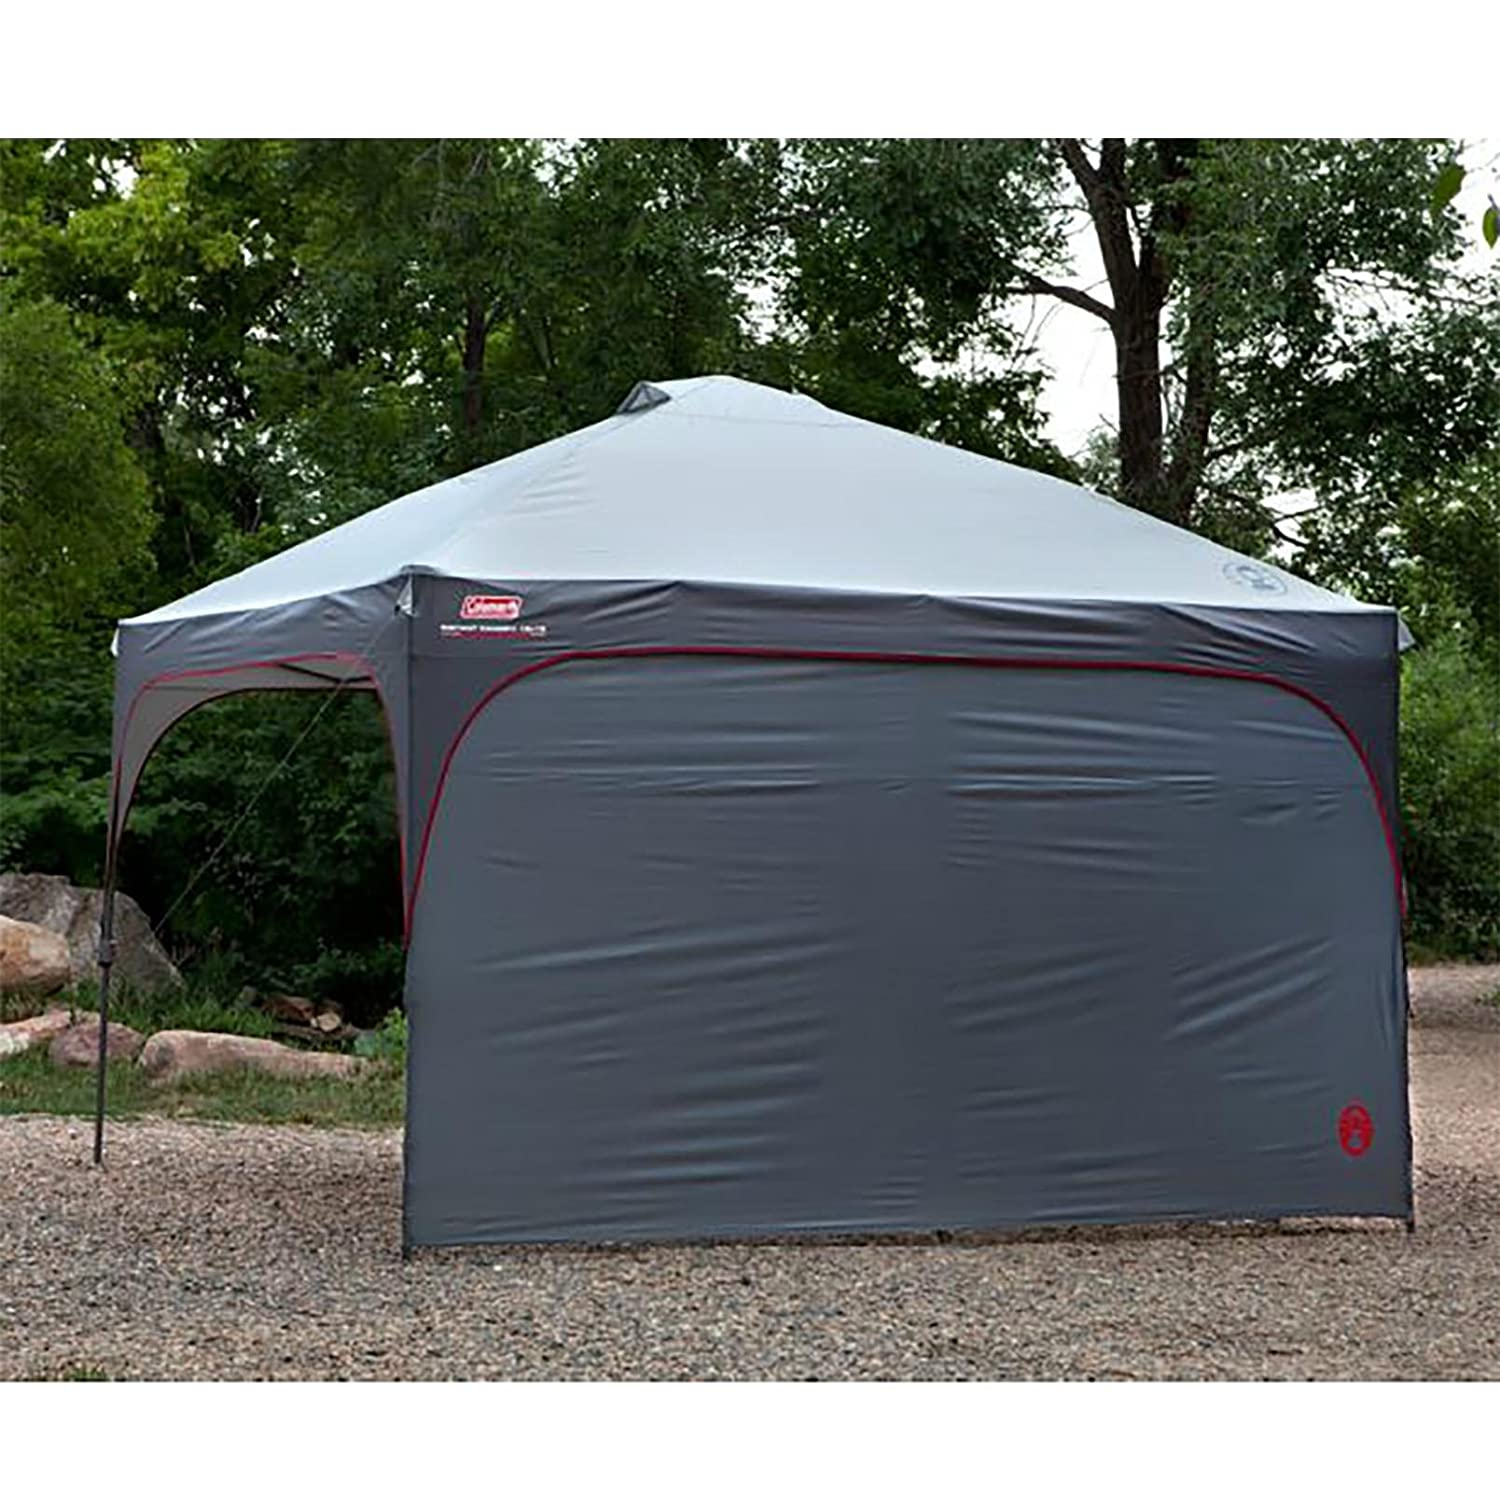 Amazon.com Coleman Instant Canopy Sunwall Accessory - 12 x 12 Sports u0026 Outdoors & Amazon.com: Coleman Instant Canopy Sunwall Accessory - 12 x 12 ...